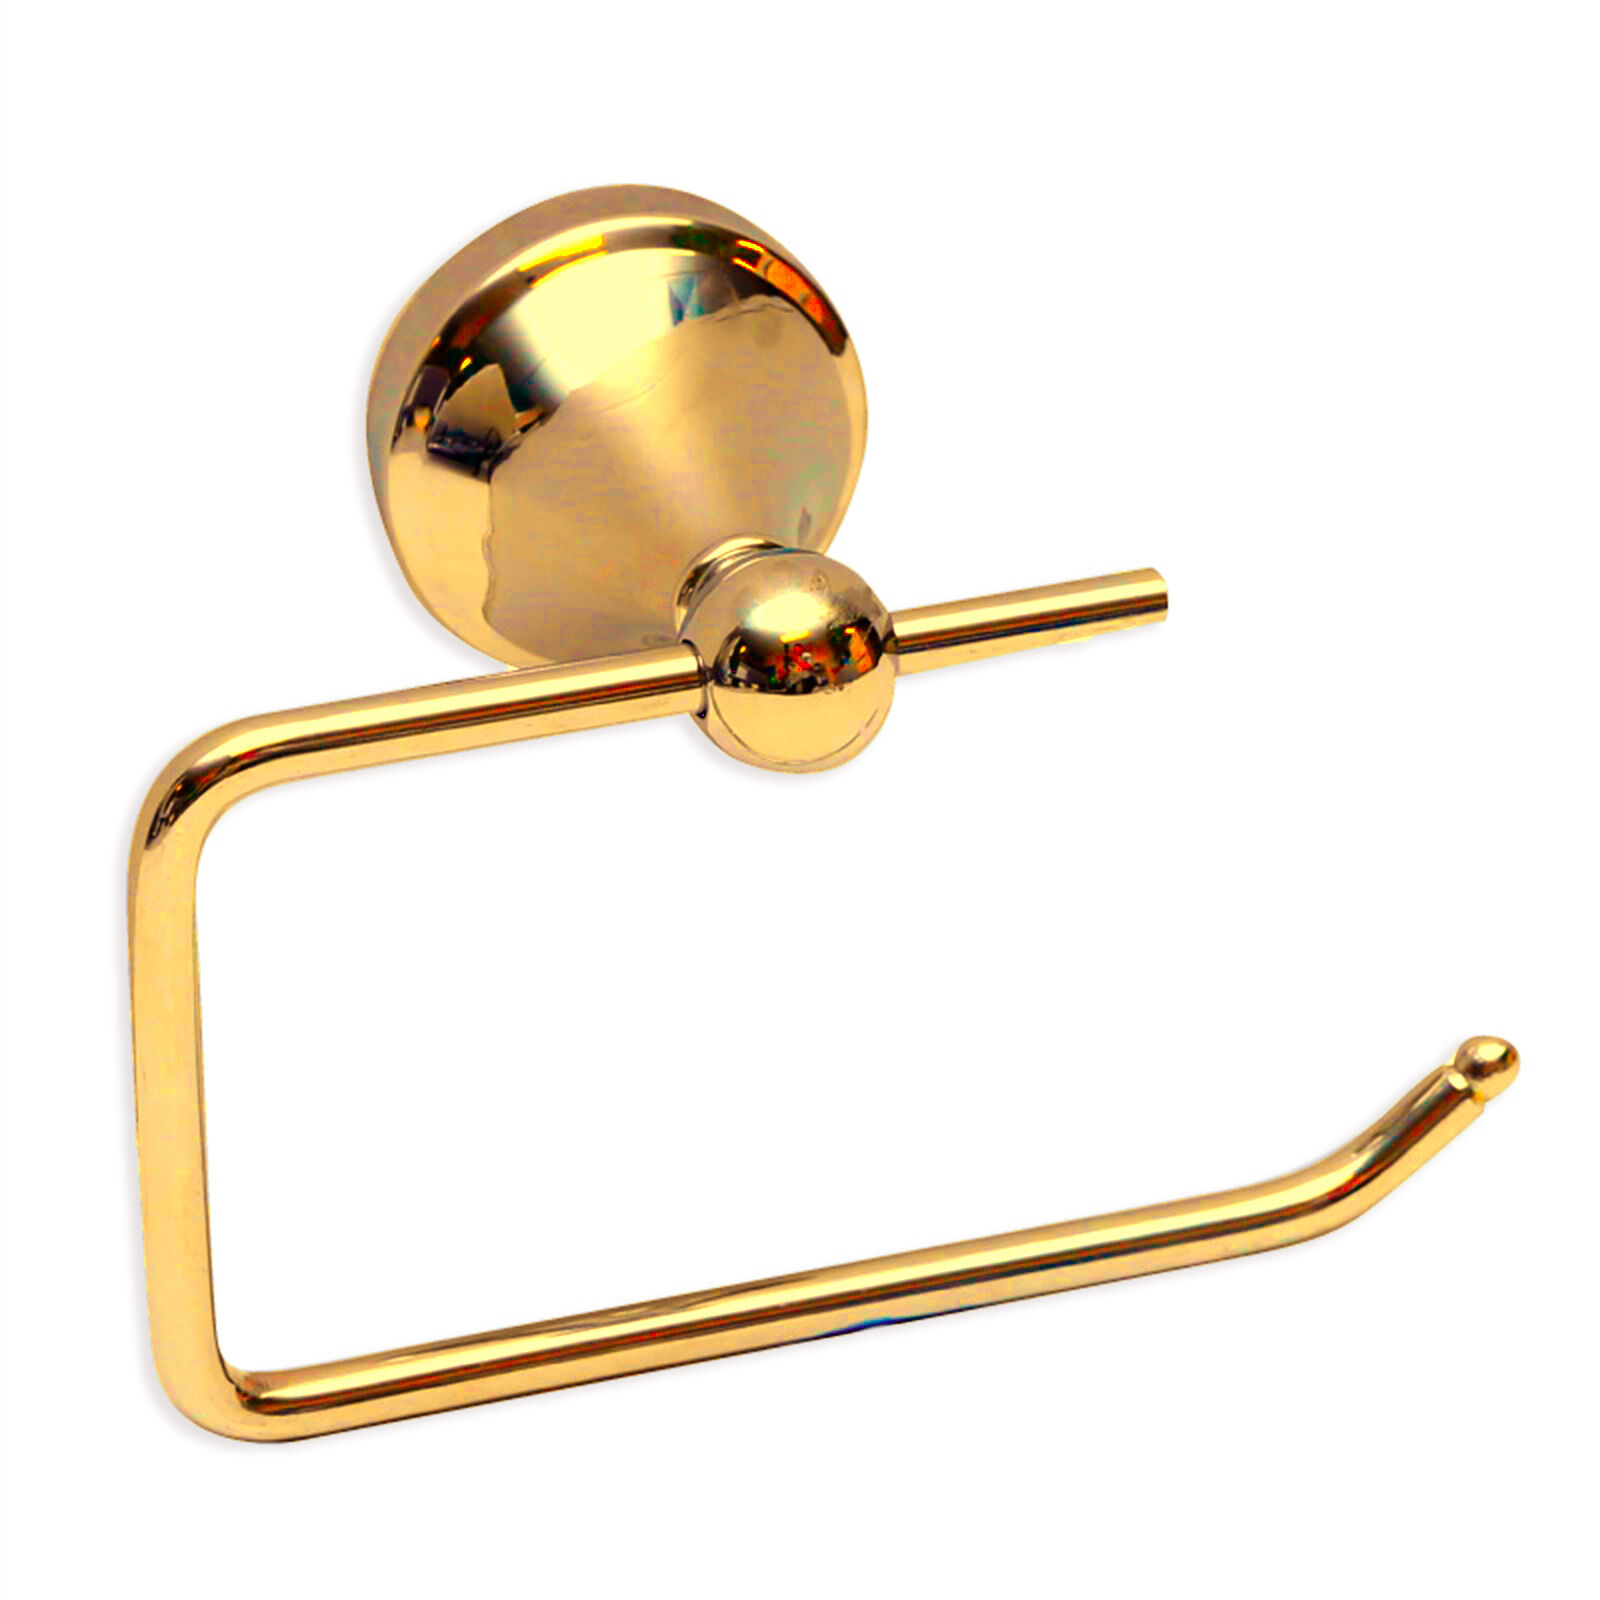 New Pure 24K gold Toilet Roll Holder pink by Enzo Barelli Bathroom Paper Holder